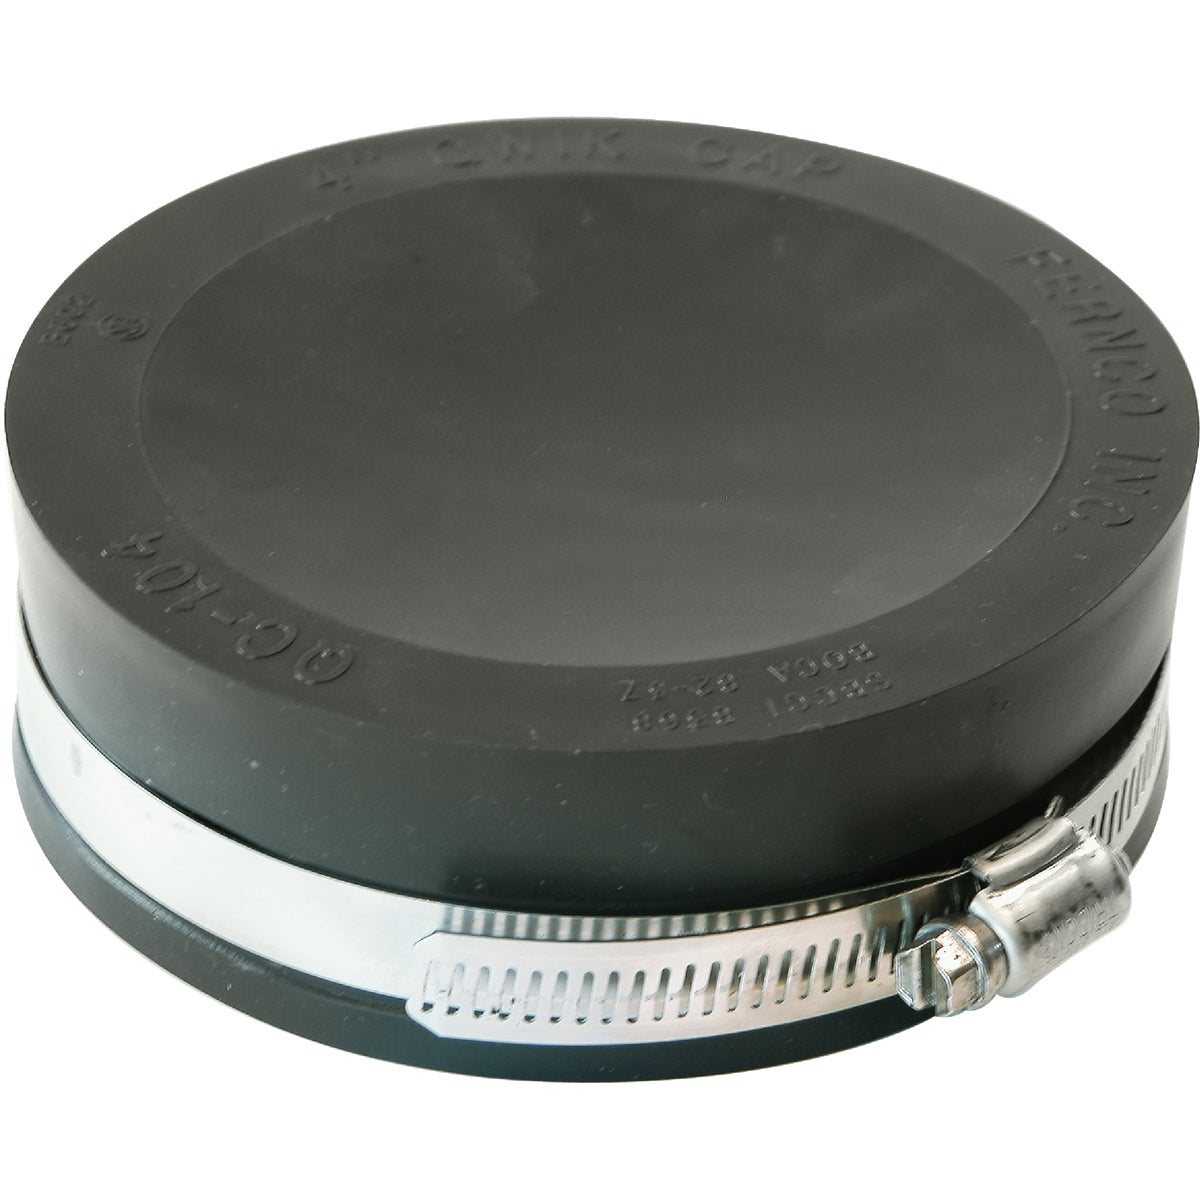 "6"" PVC PIPE CAP - PQC-106 by Fernco Inc"